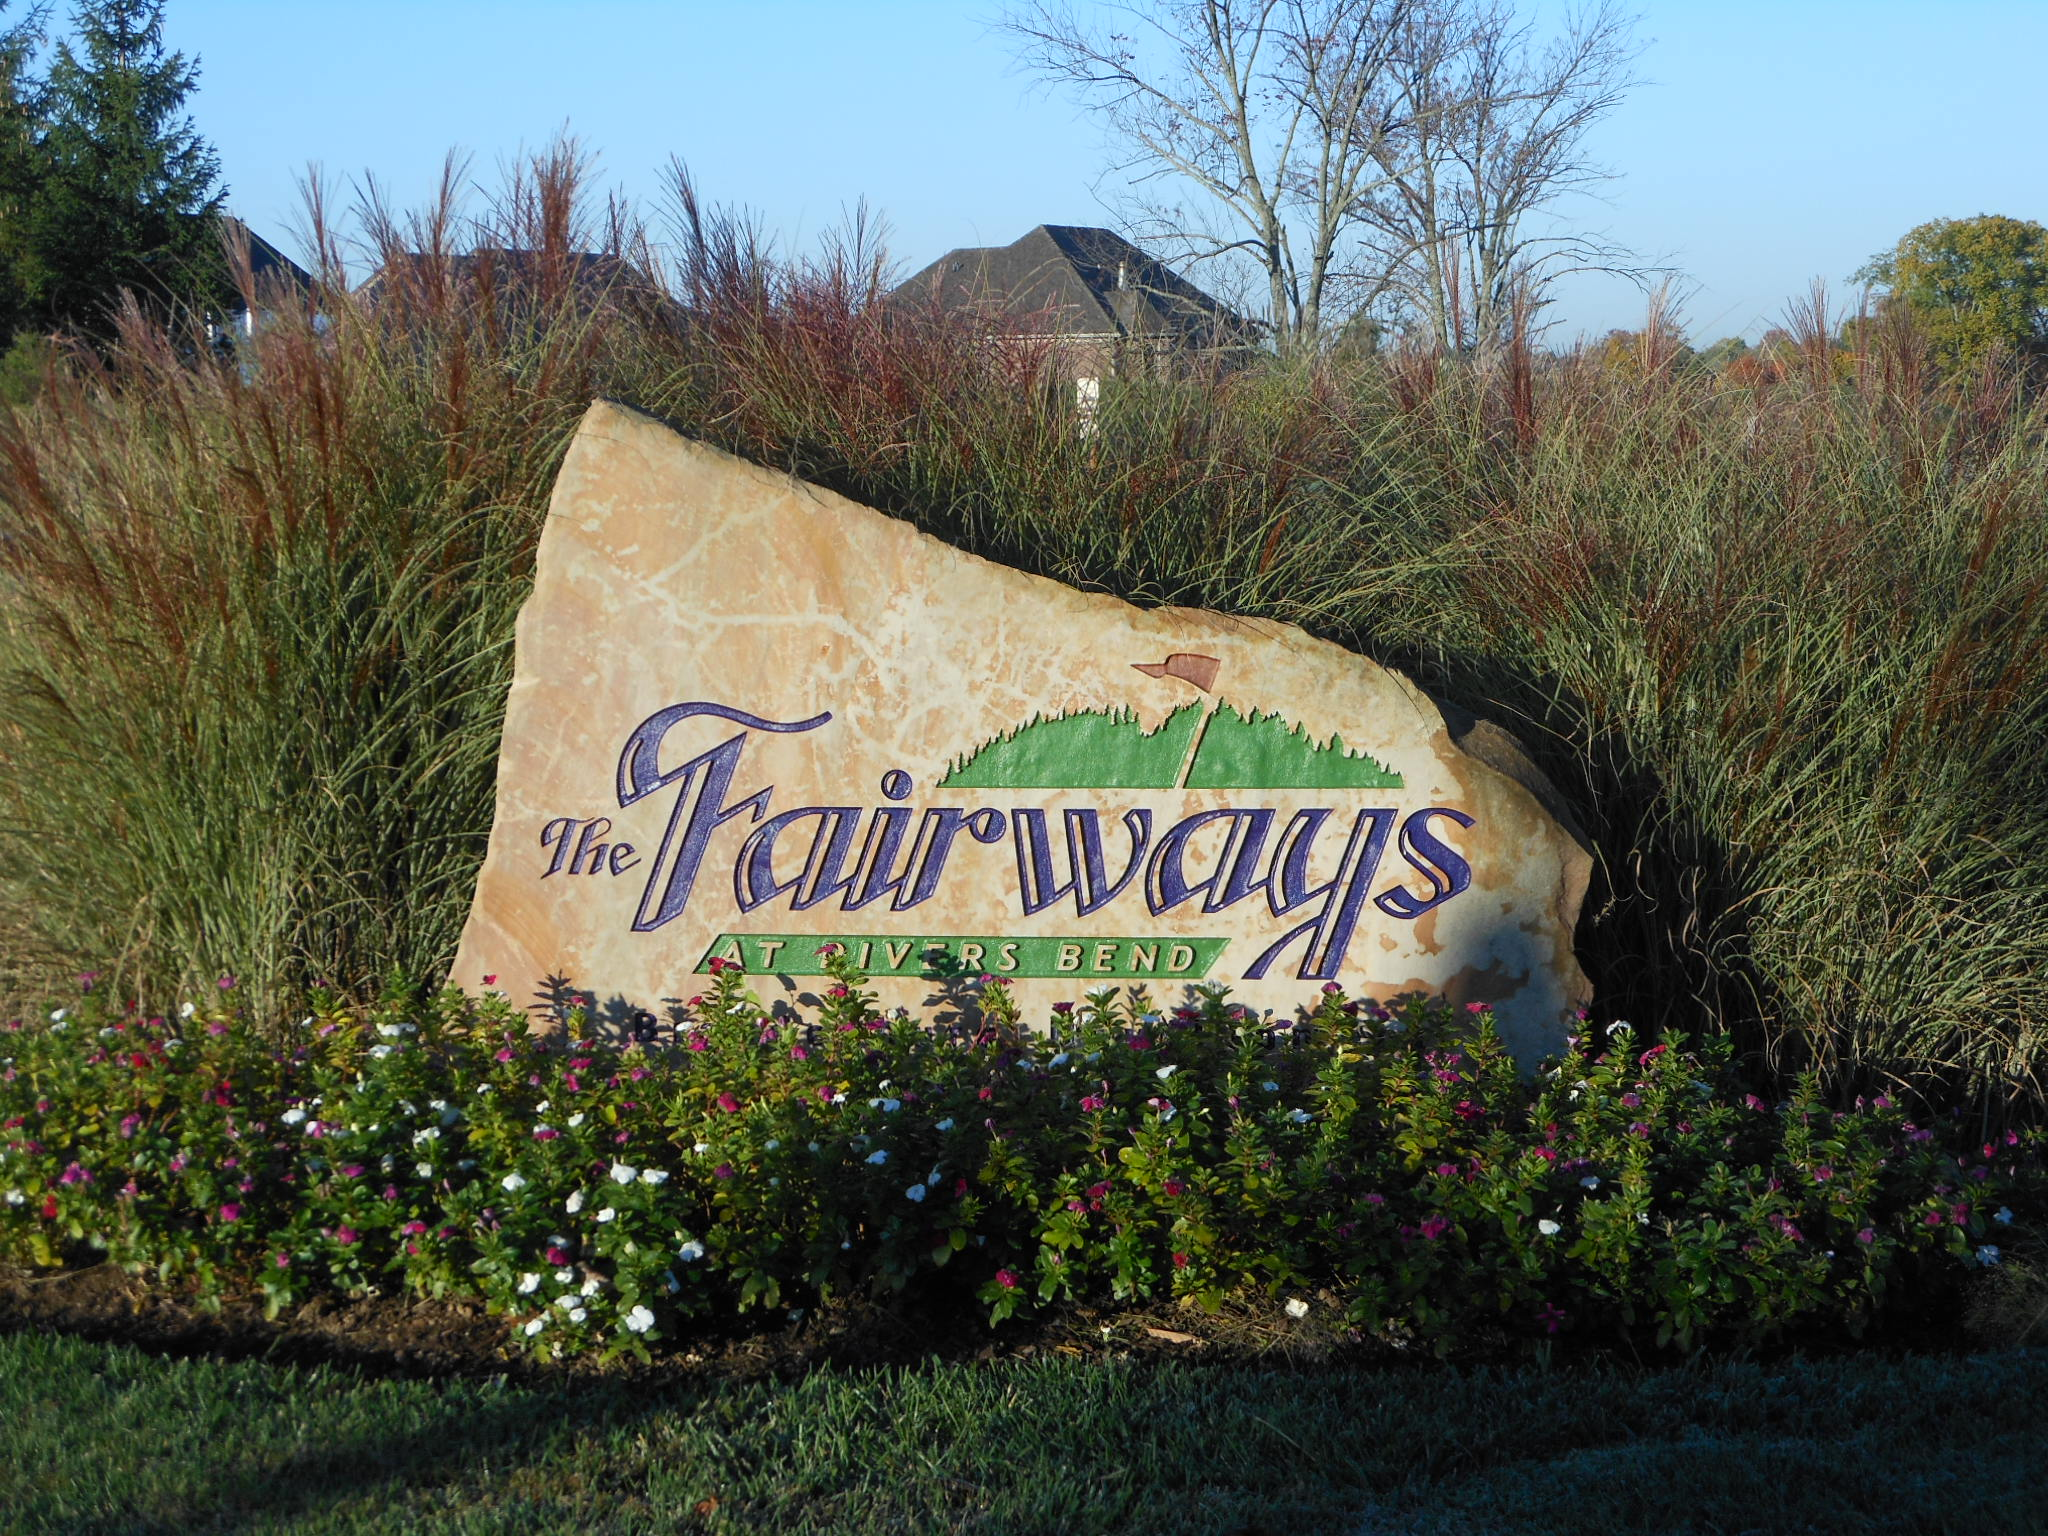 The Fairways at Rivers Bend